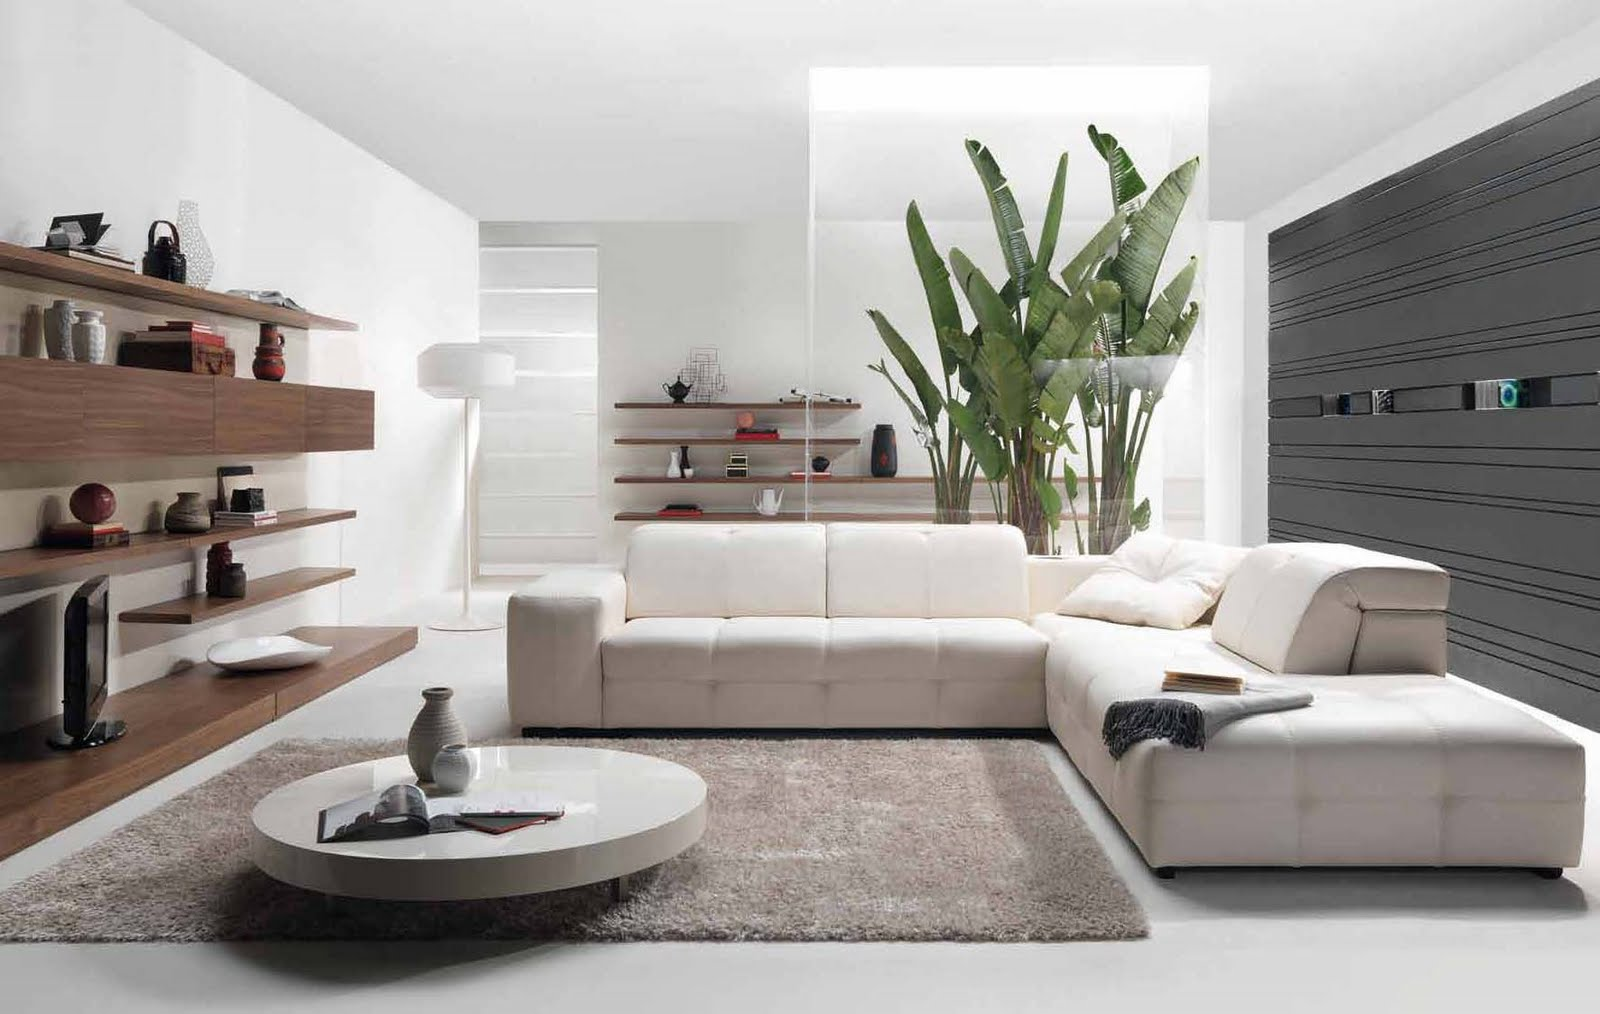 Future house design modern living room interior design for Decor interior design